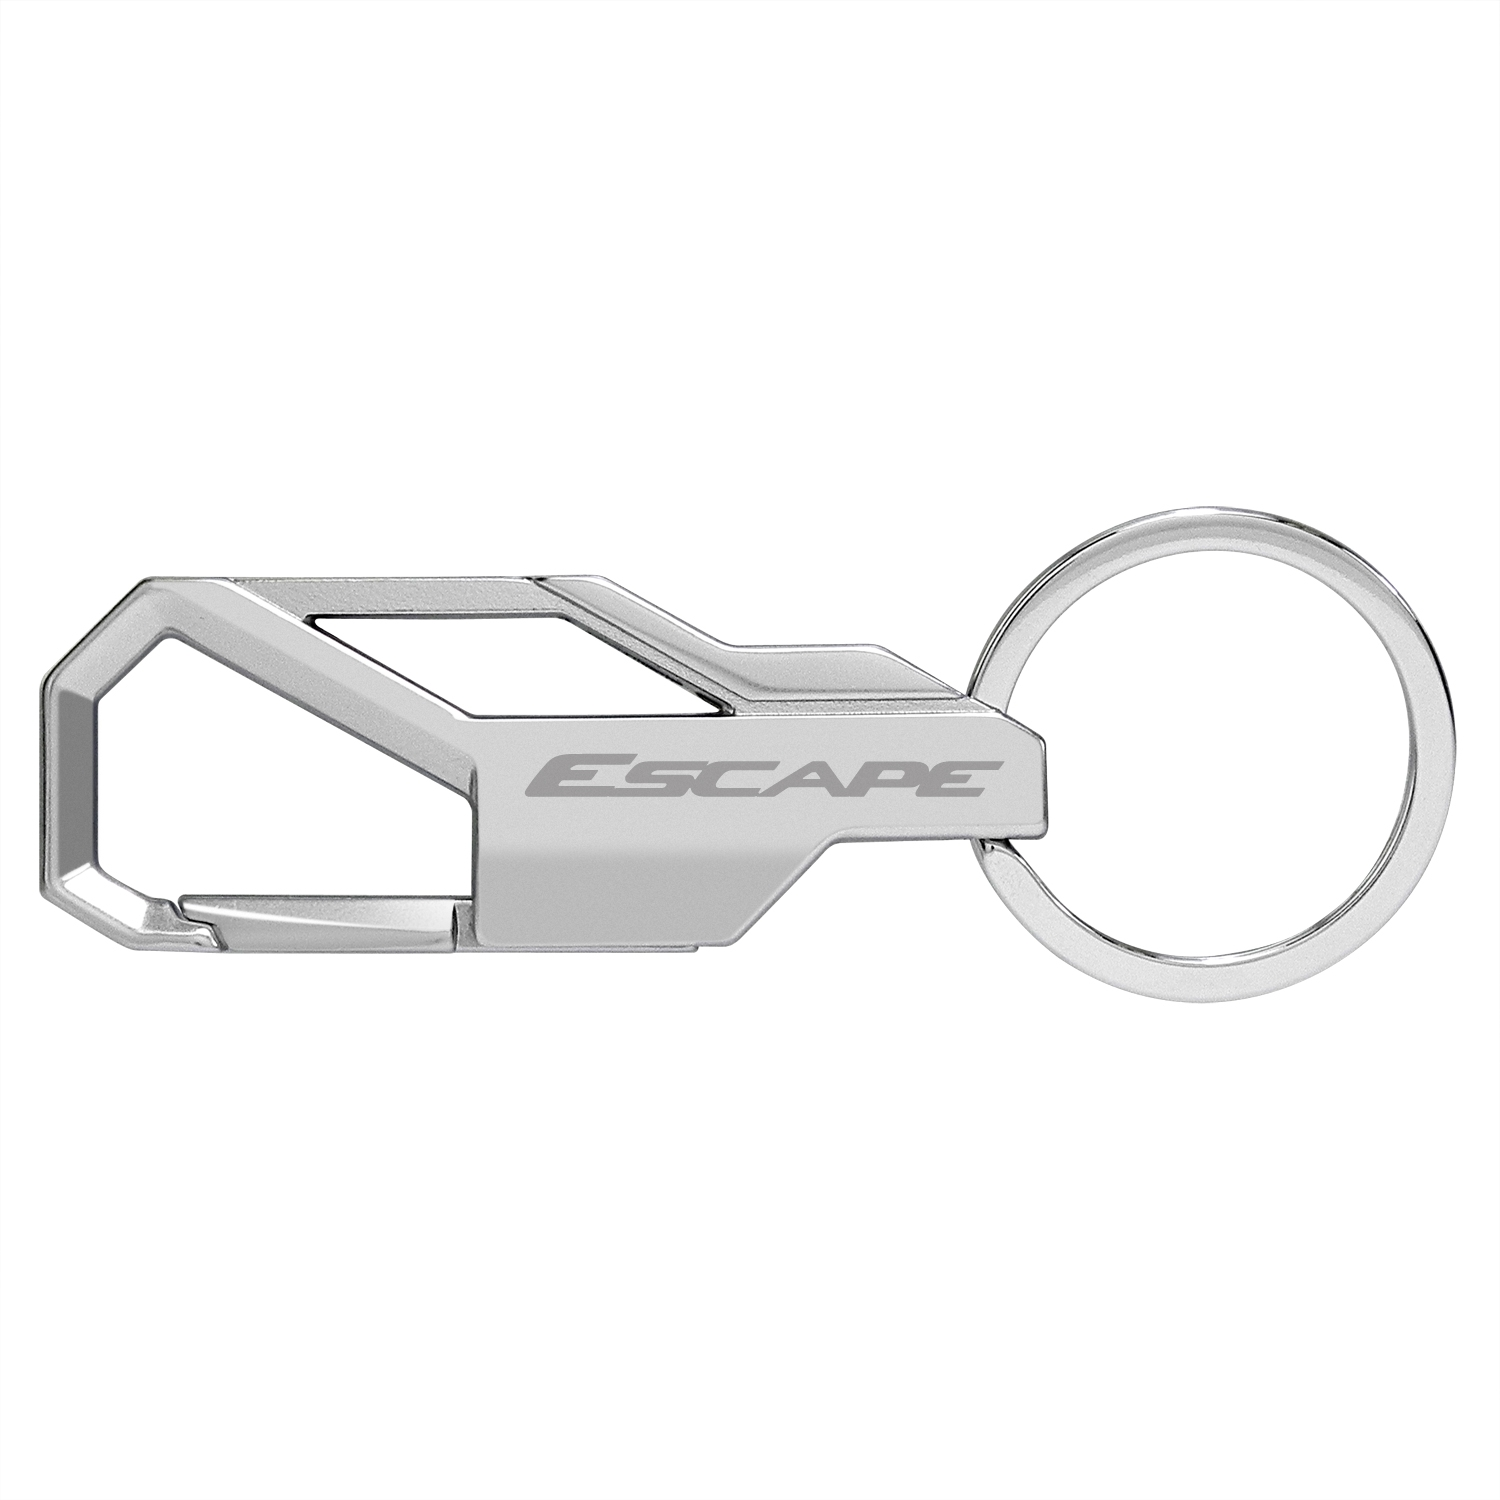 Ford Escape Silver Snap Hook Metal Key Chain